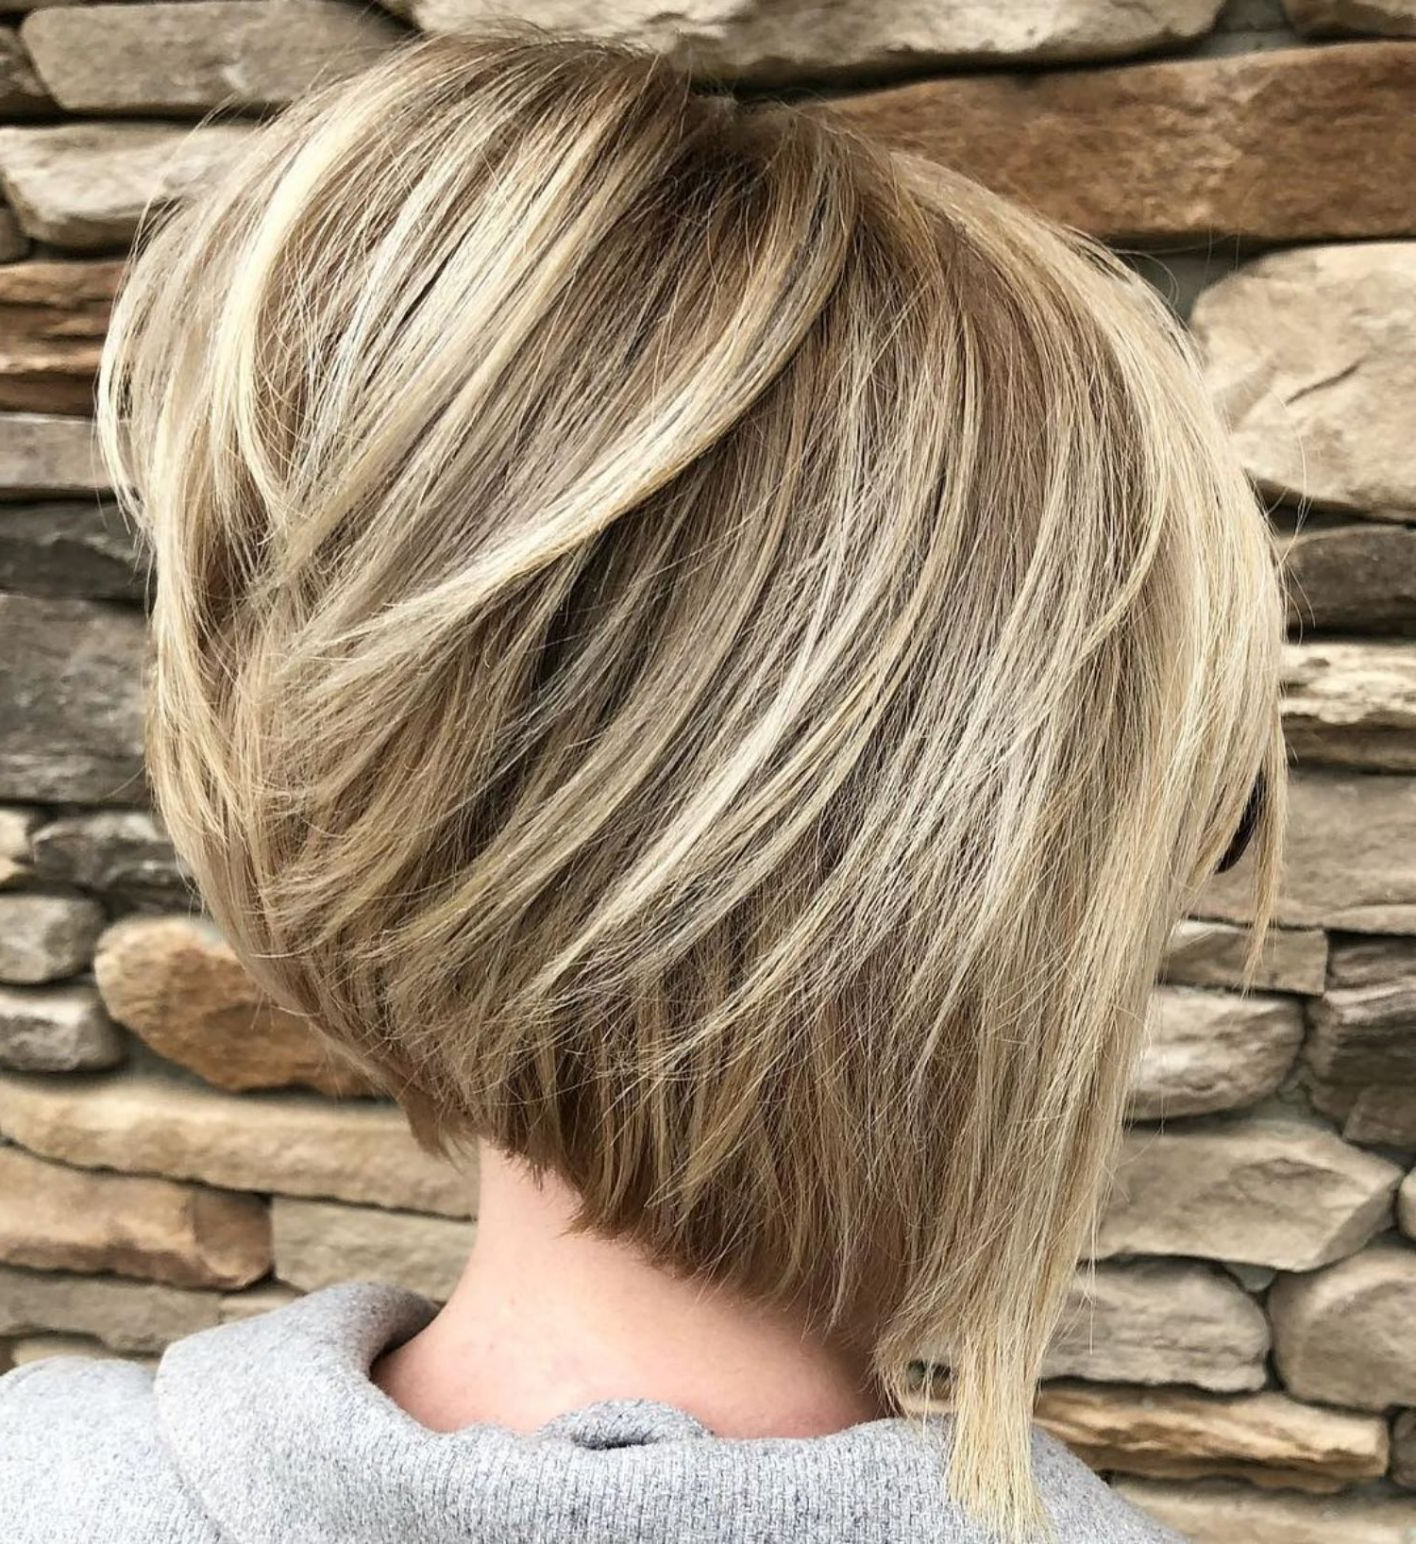 60 Layered Bob Styles: Modern Haircuts With Layers For Any Occasion Within Balayage Bob Haircuts With Layers (View 10 of 20)